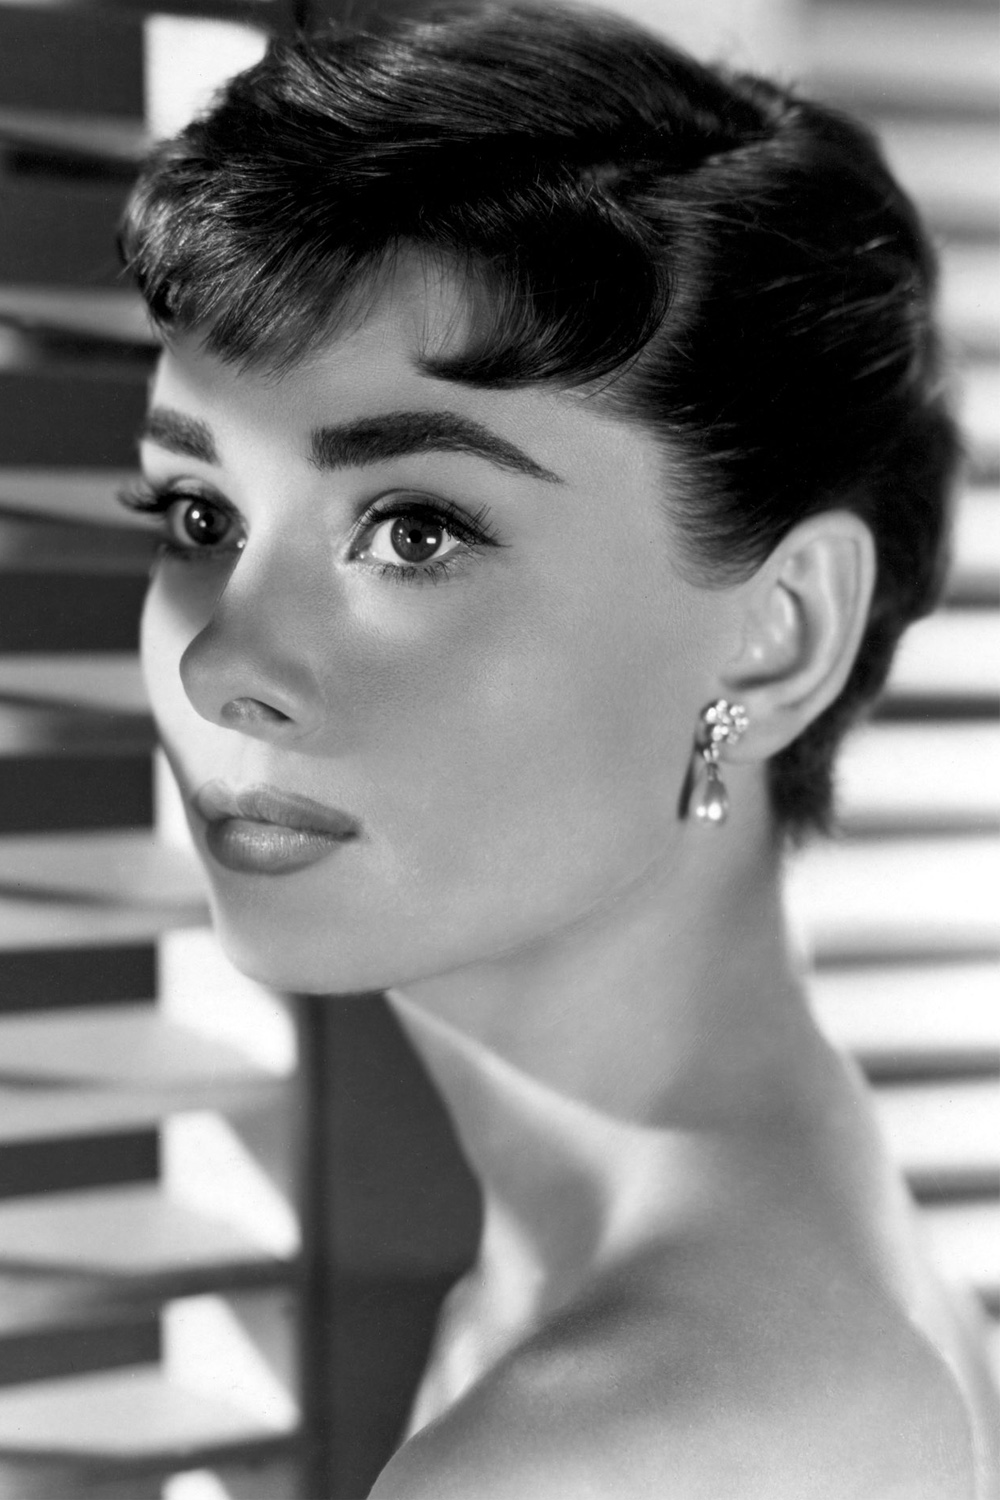 Pleasing Audrey Hepburn39S Best Hairstyles From Breakfast At Tiffany39S To Short Hairstyles For Black Women Fulllsitofus